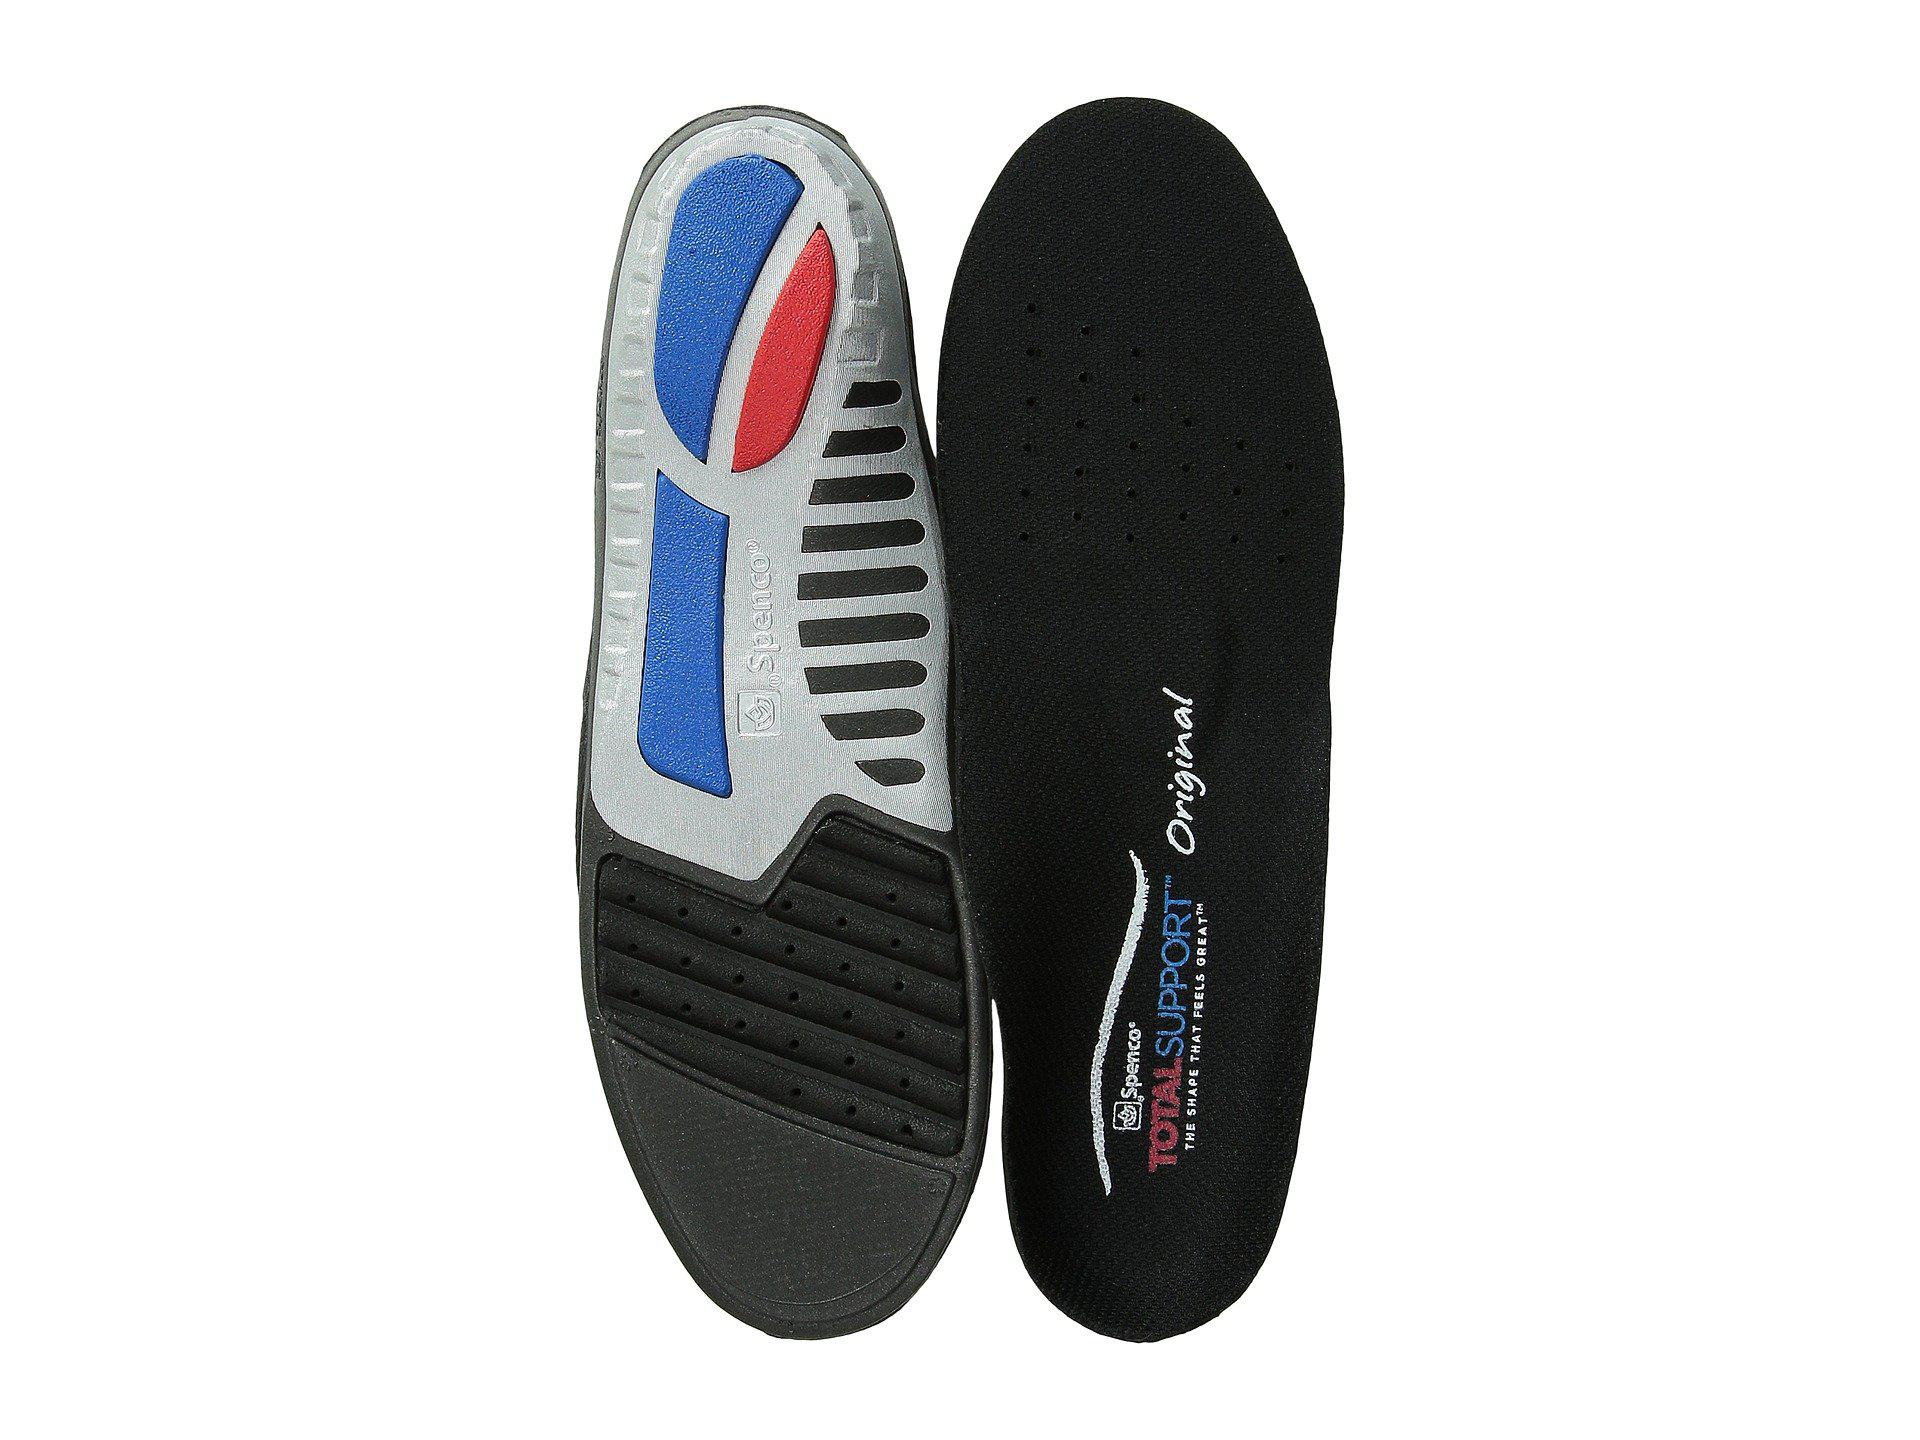 a3d98c2a10 Spenco. Women's Total Support Original - 1 Pair (insoles) Insoles  Accessories Shoes